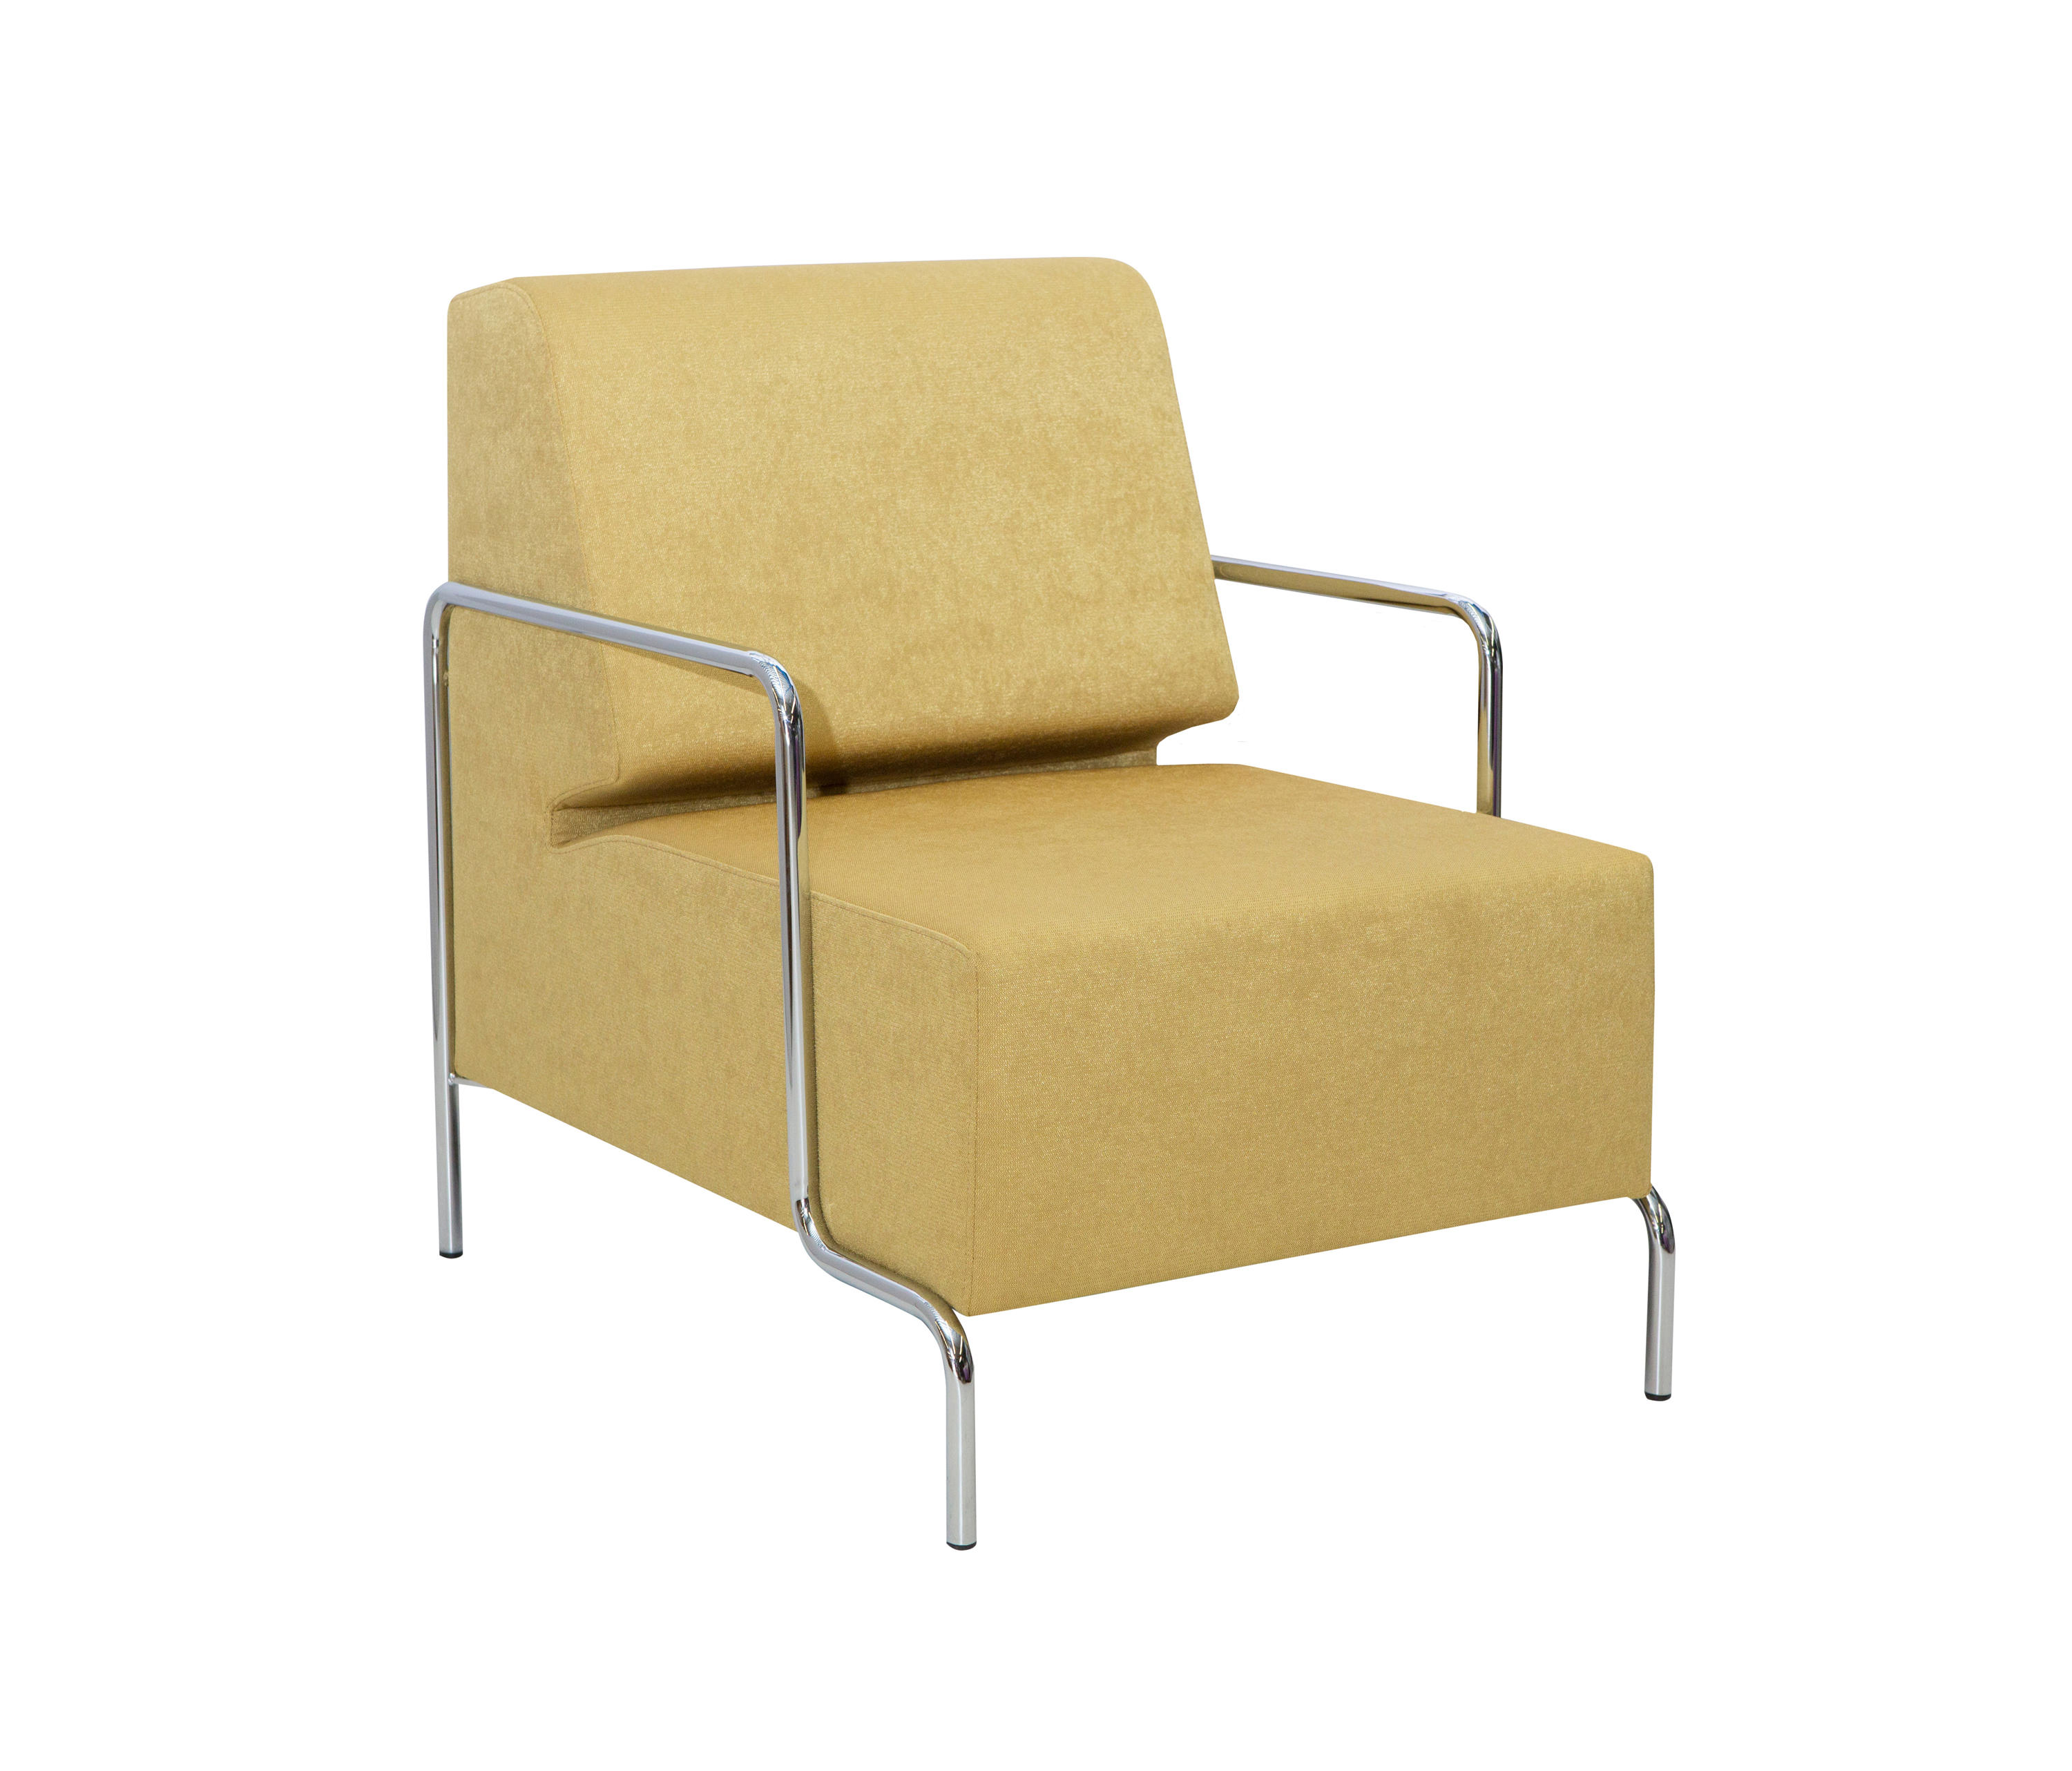 Polstermöbel Outlet Herford Mantis Armchair Armchairs From Smv Sitz Objektmöbel Architonic